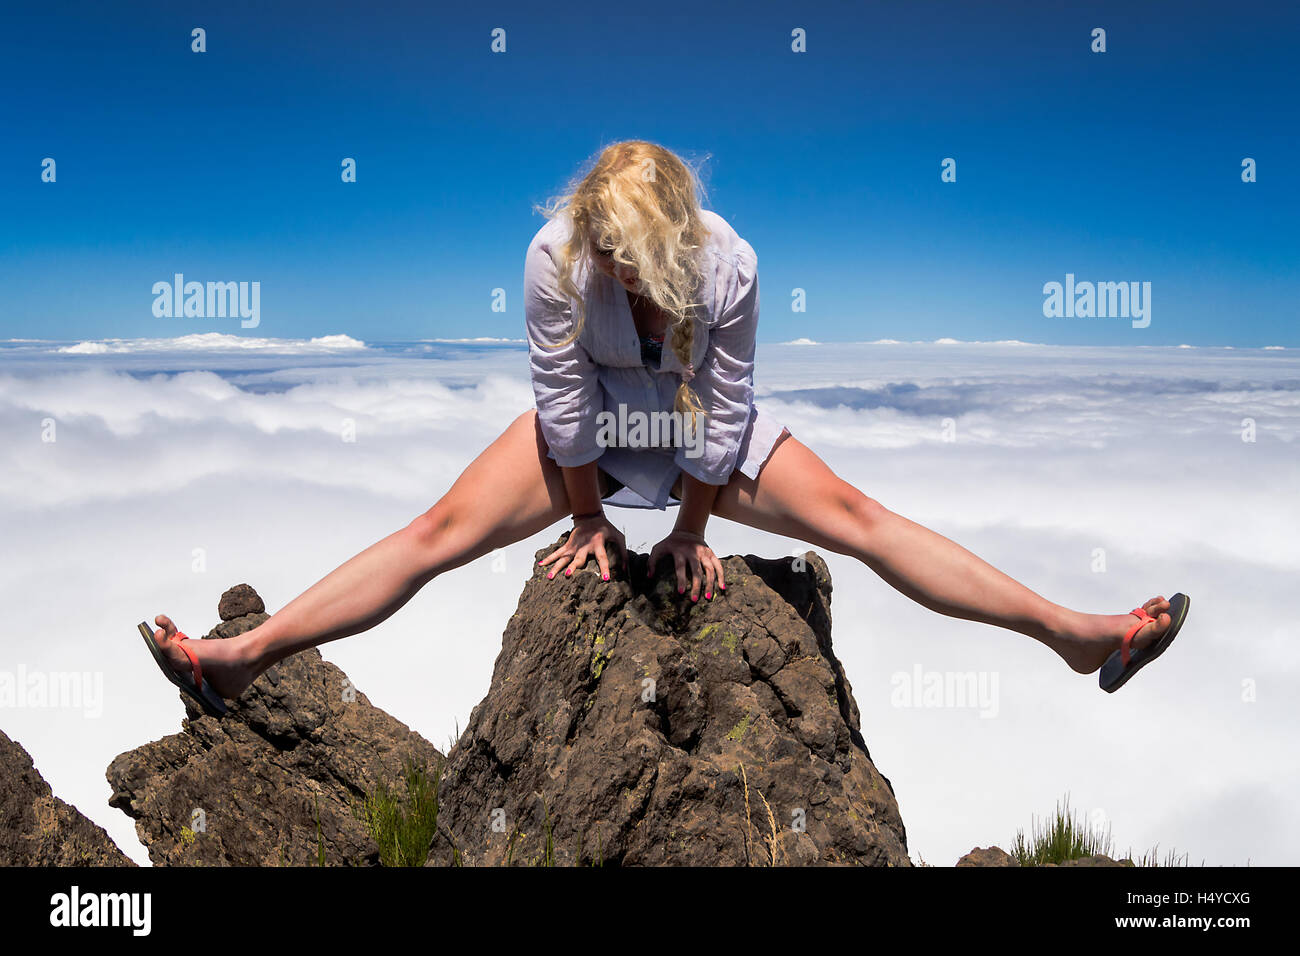 Young blonde woman acrobat making splits on rock on mountain's summit. - Stock Image